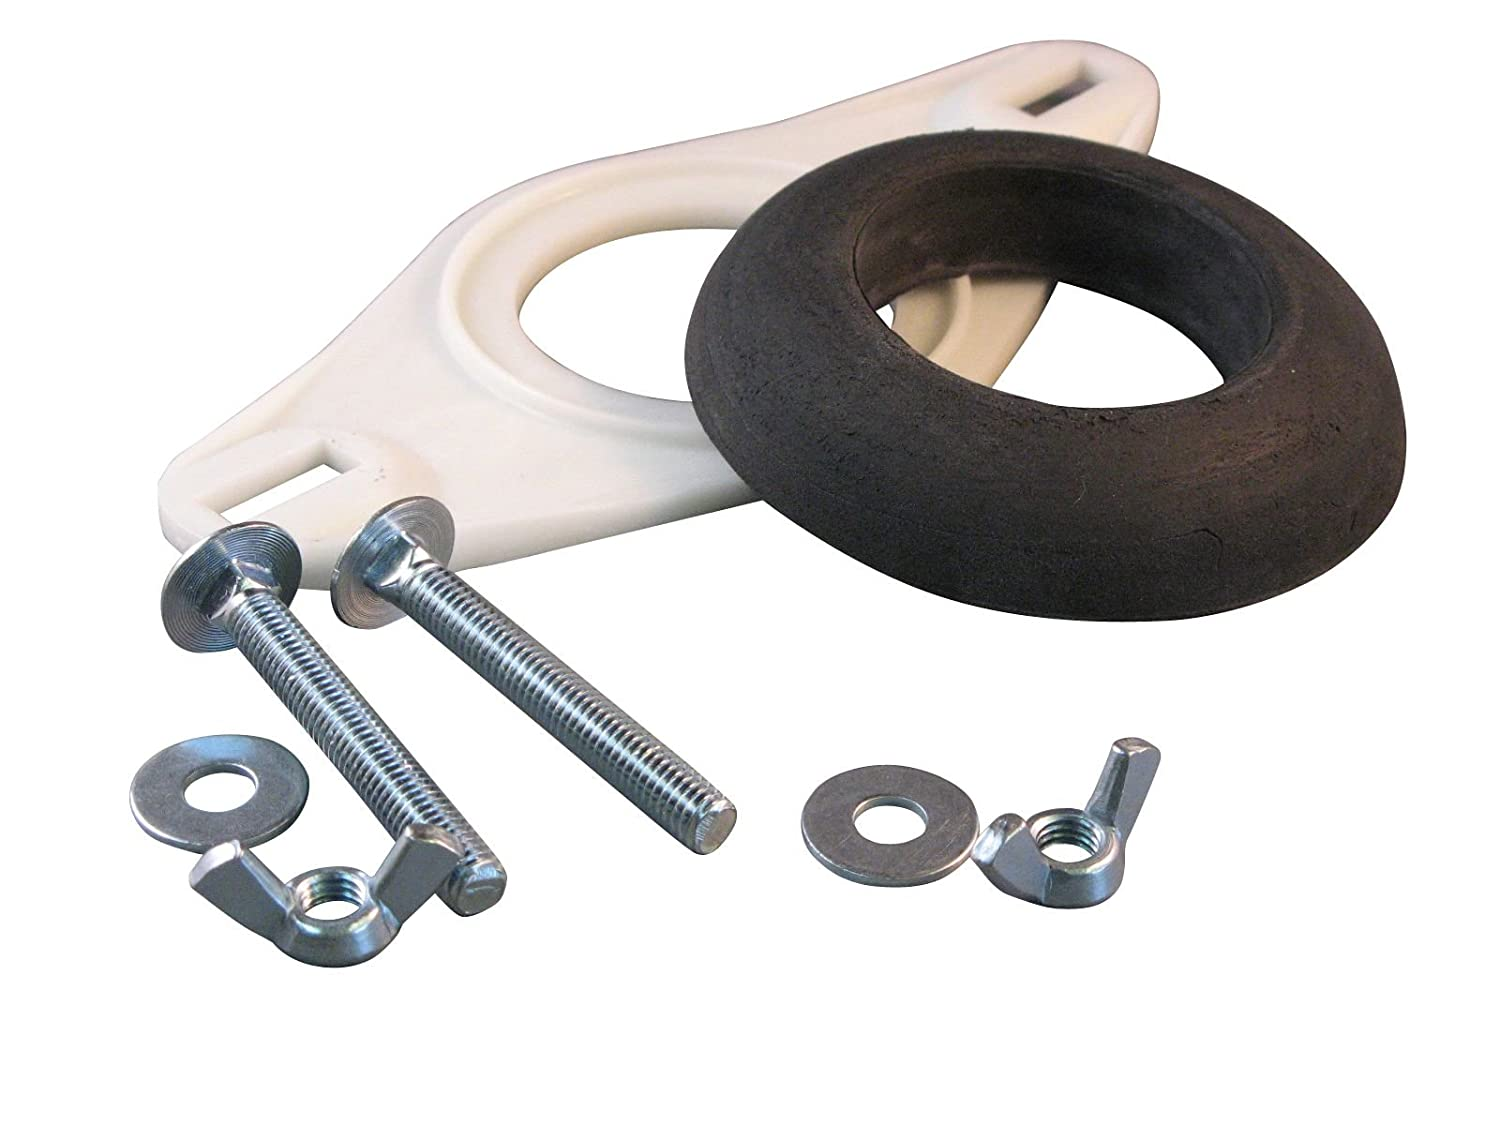 Donut Doughnut Washer Seal for use with WC Pan//Cistern Close Coupling Plate